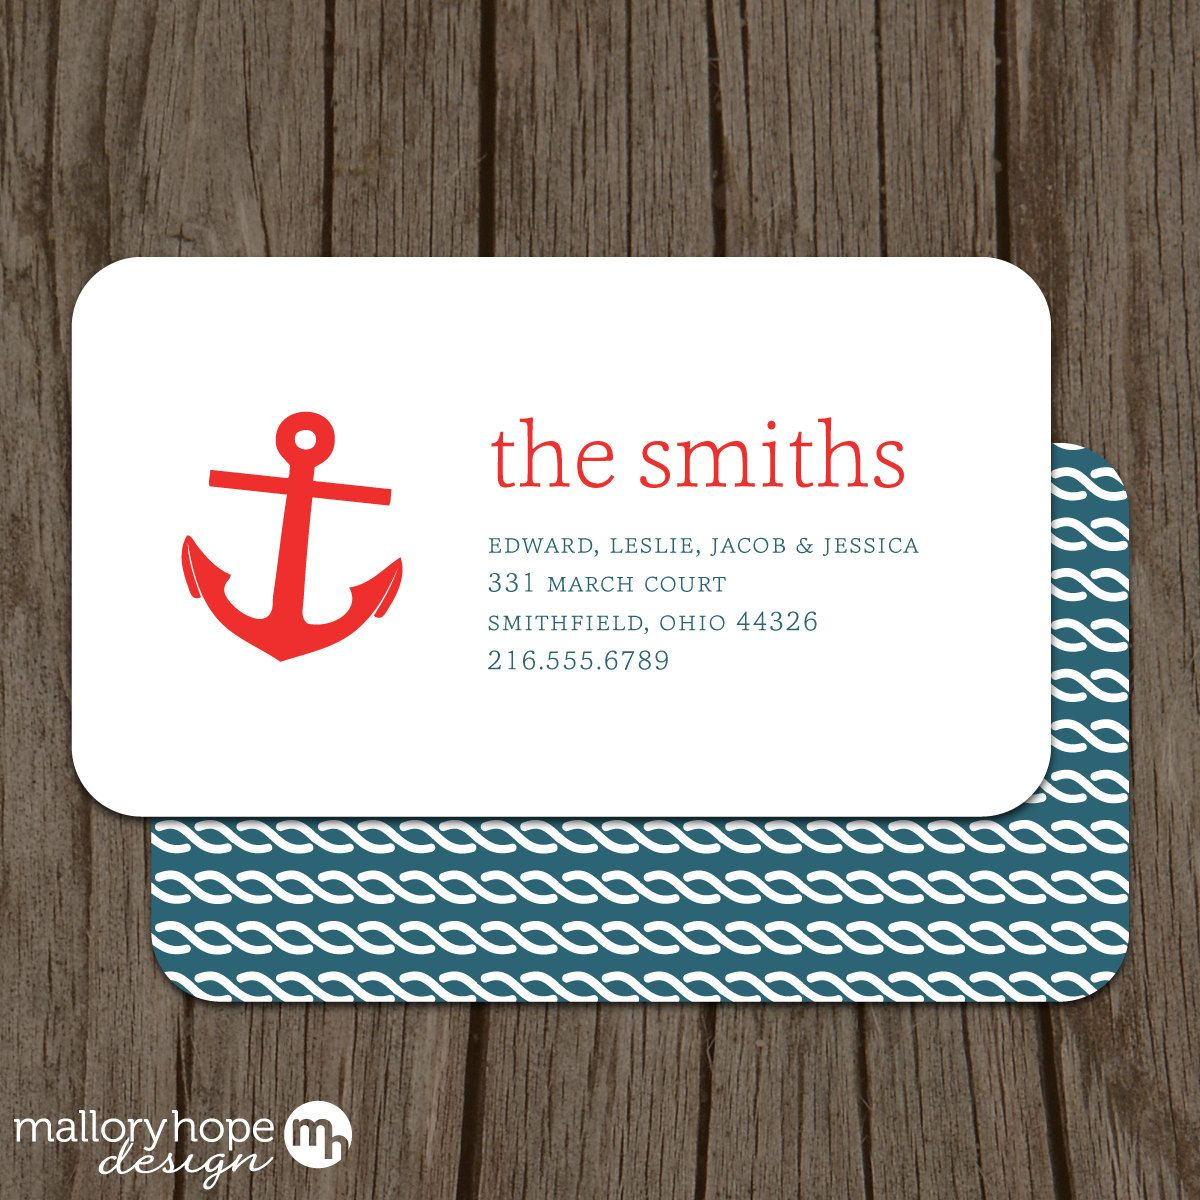 Beautiful Calling Card Business Pictures Inspiration - Business Card ...